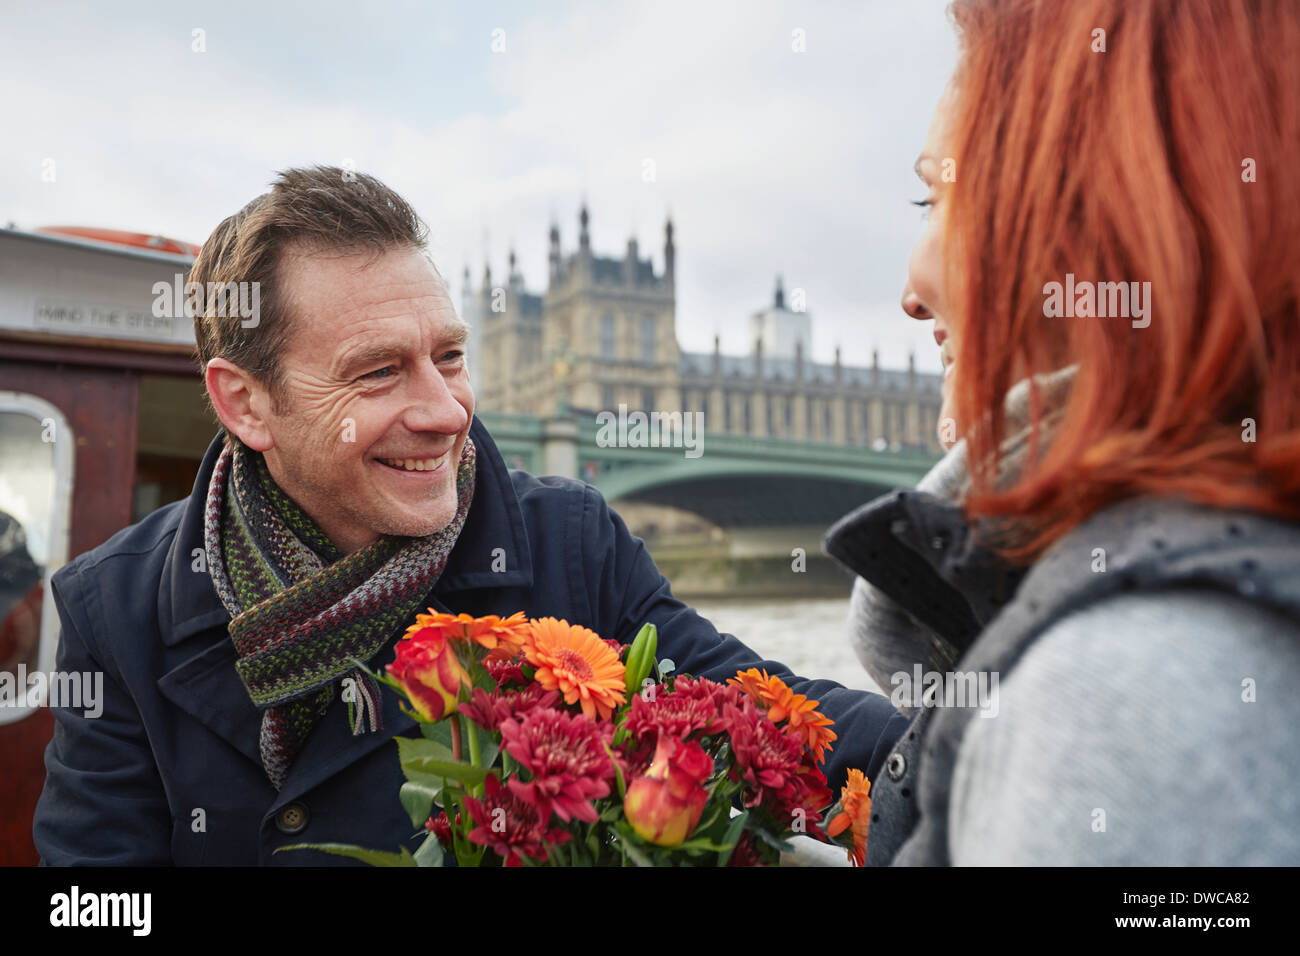 Romantic mature couple with bunch of flowers, London, UK - Stock Image